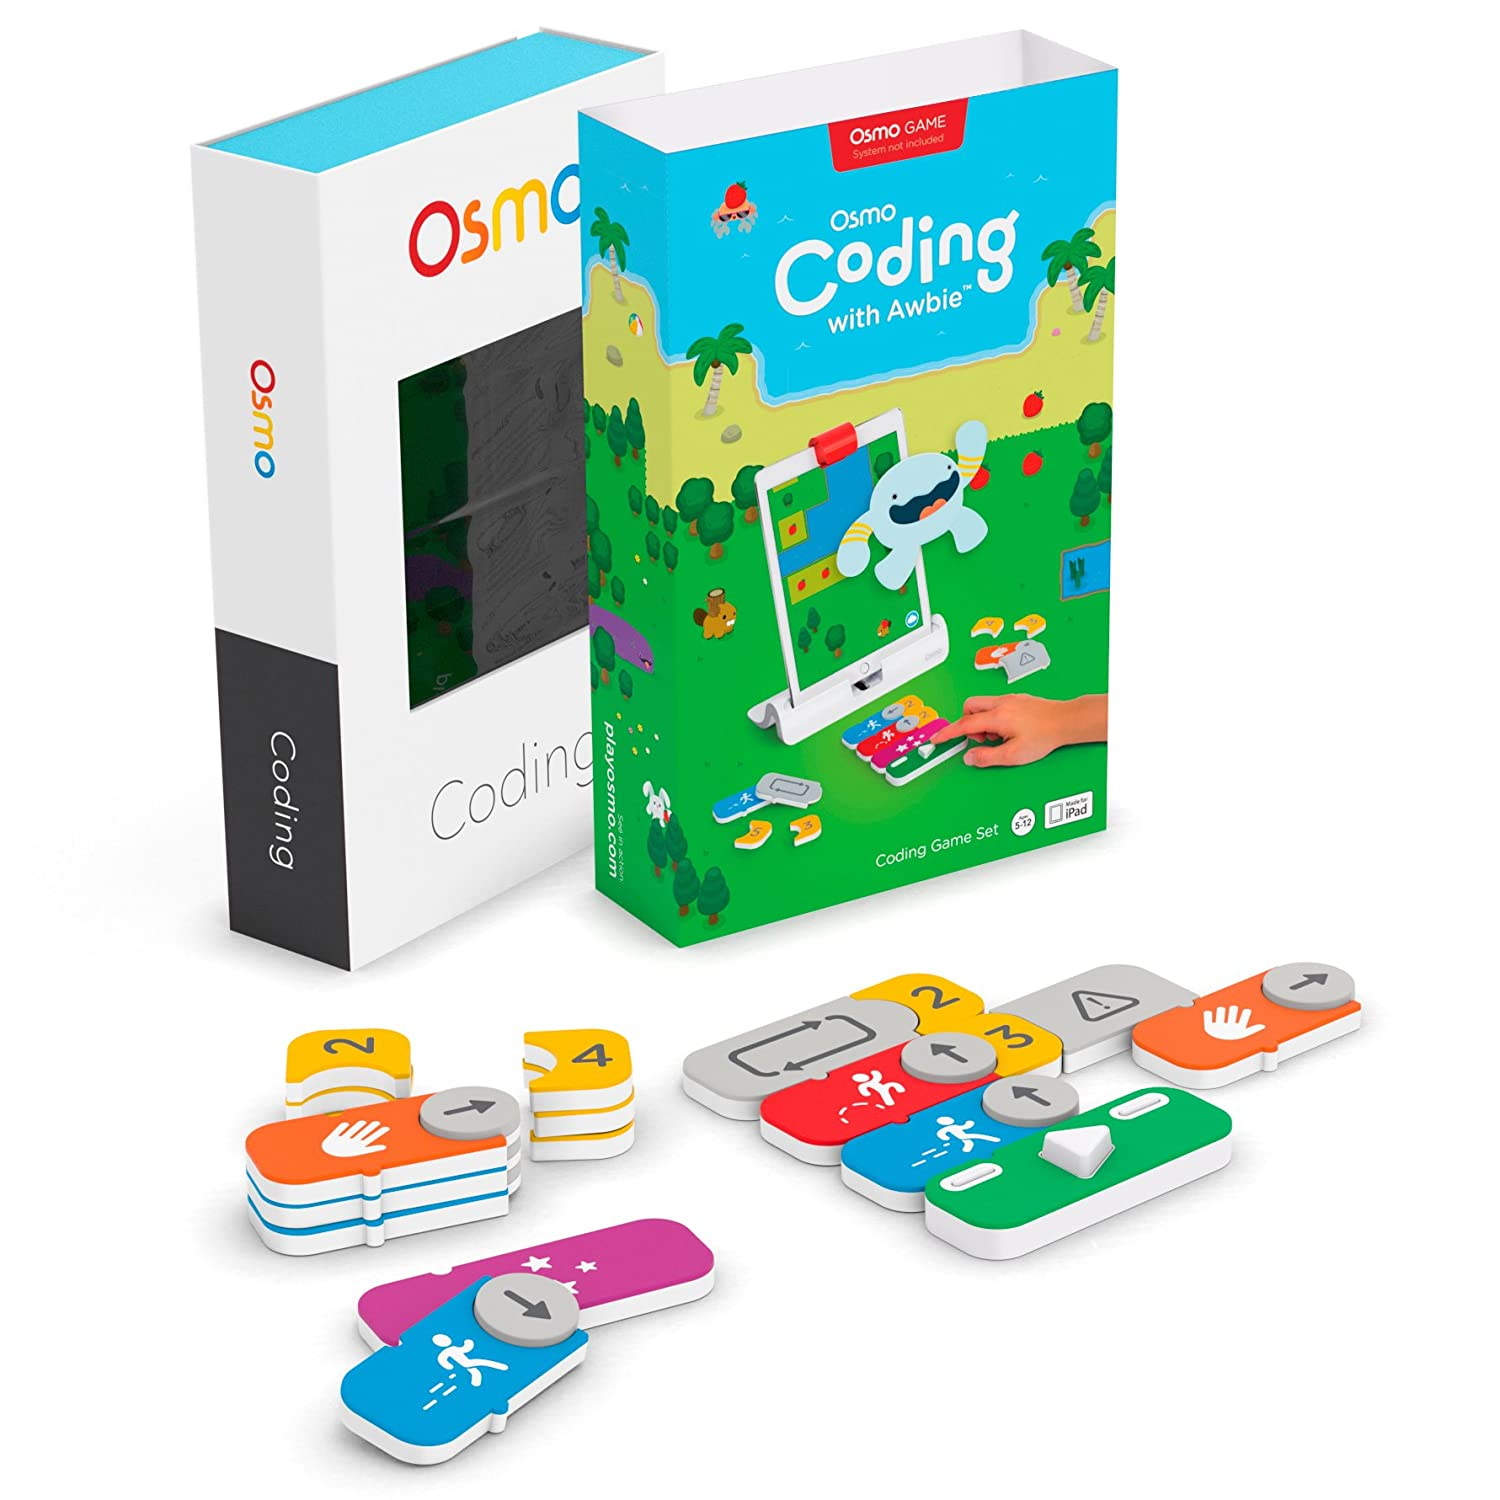 Coding Toys & Books For Kids Store